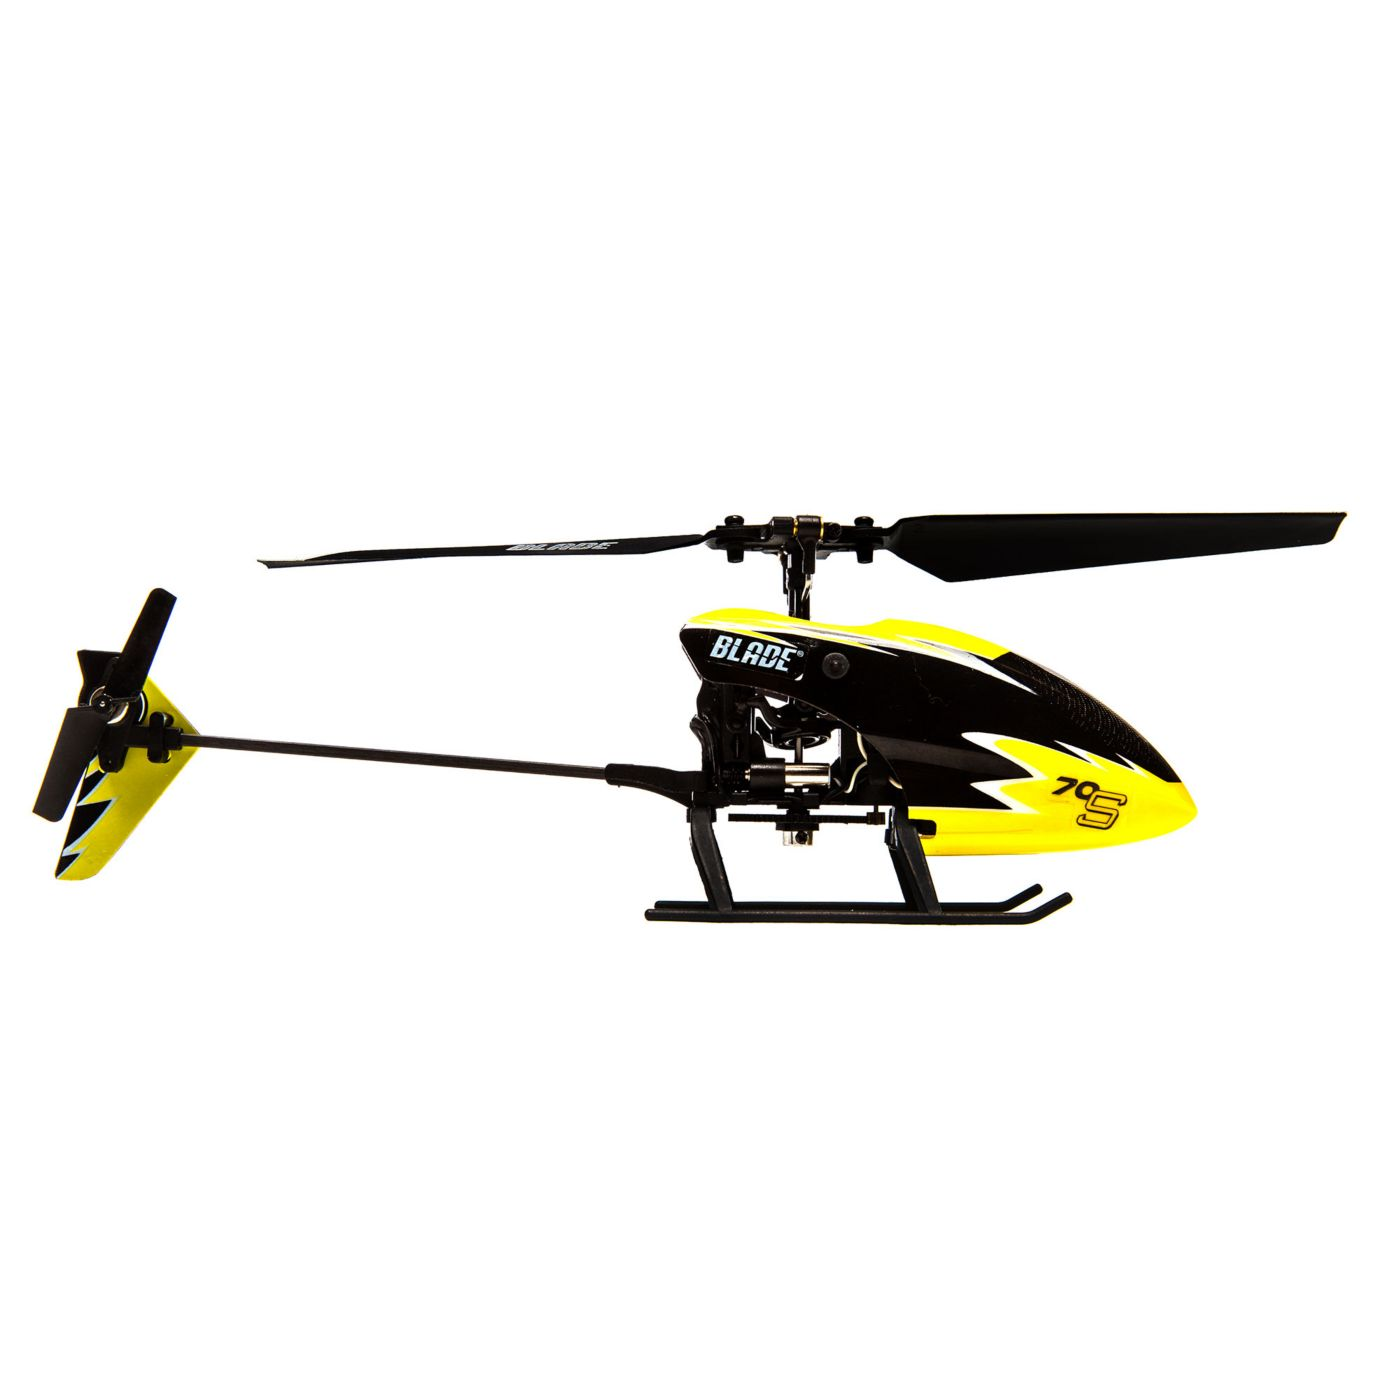 Blade 70 S Ready to Fly with SAFE Technology BLH4200